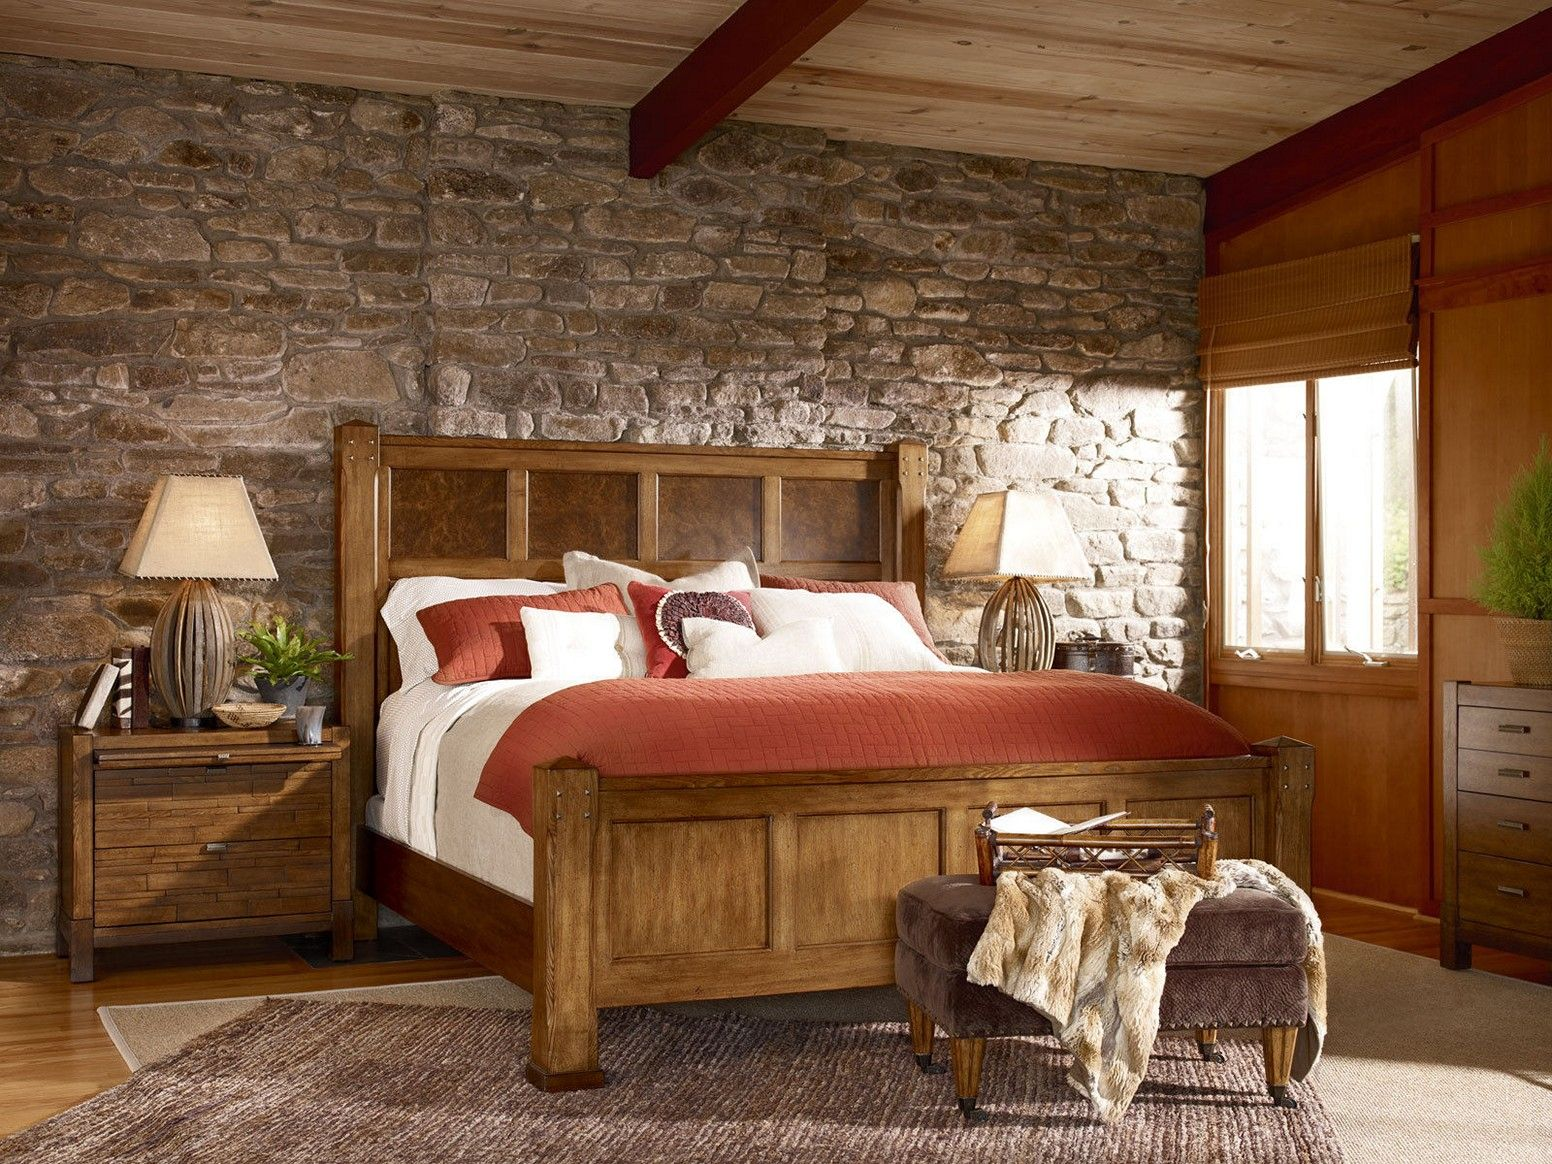 Rustic Country Bedroom Decorating Ideas Interior Decor